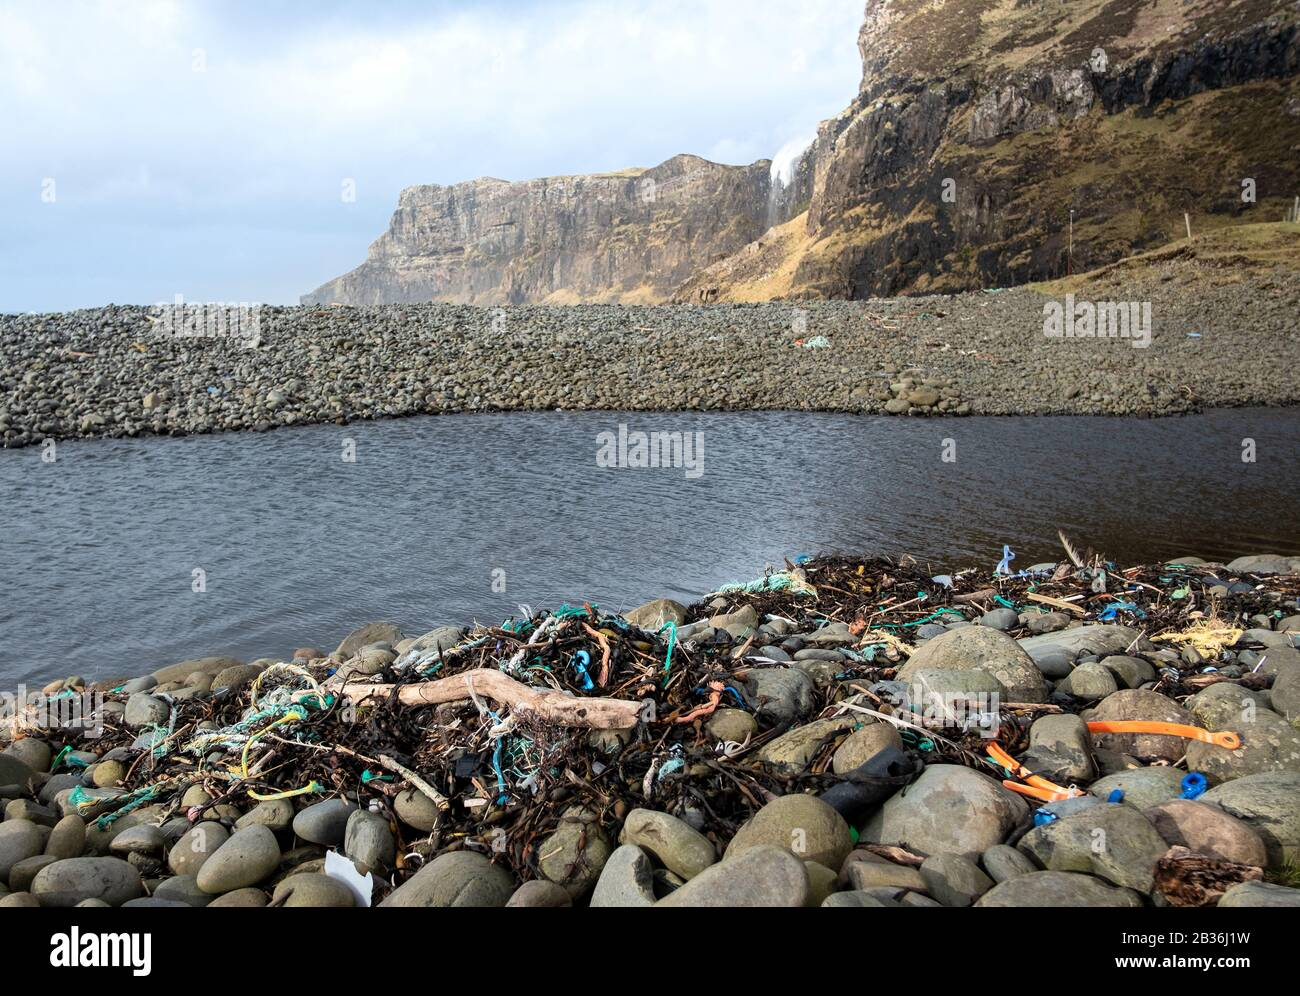 Plastic and nylon rope pollution on the beach at remote Talisker Bay, Skye, Inner Hebrides Stock Photo